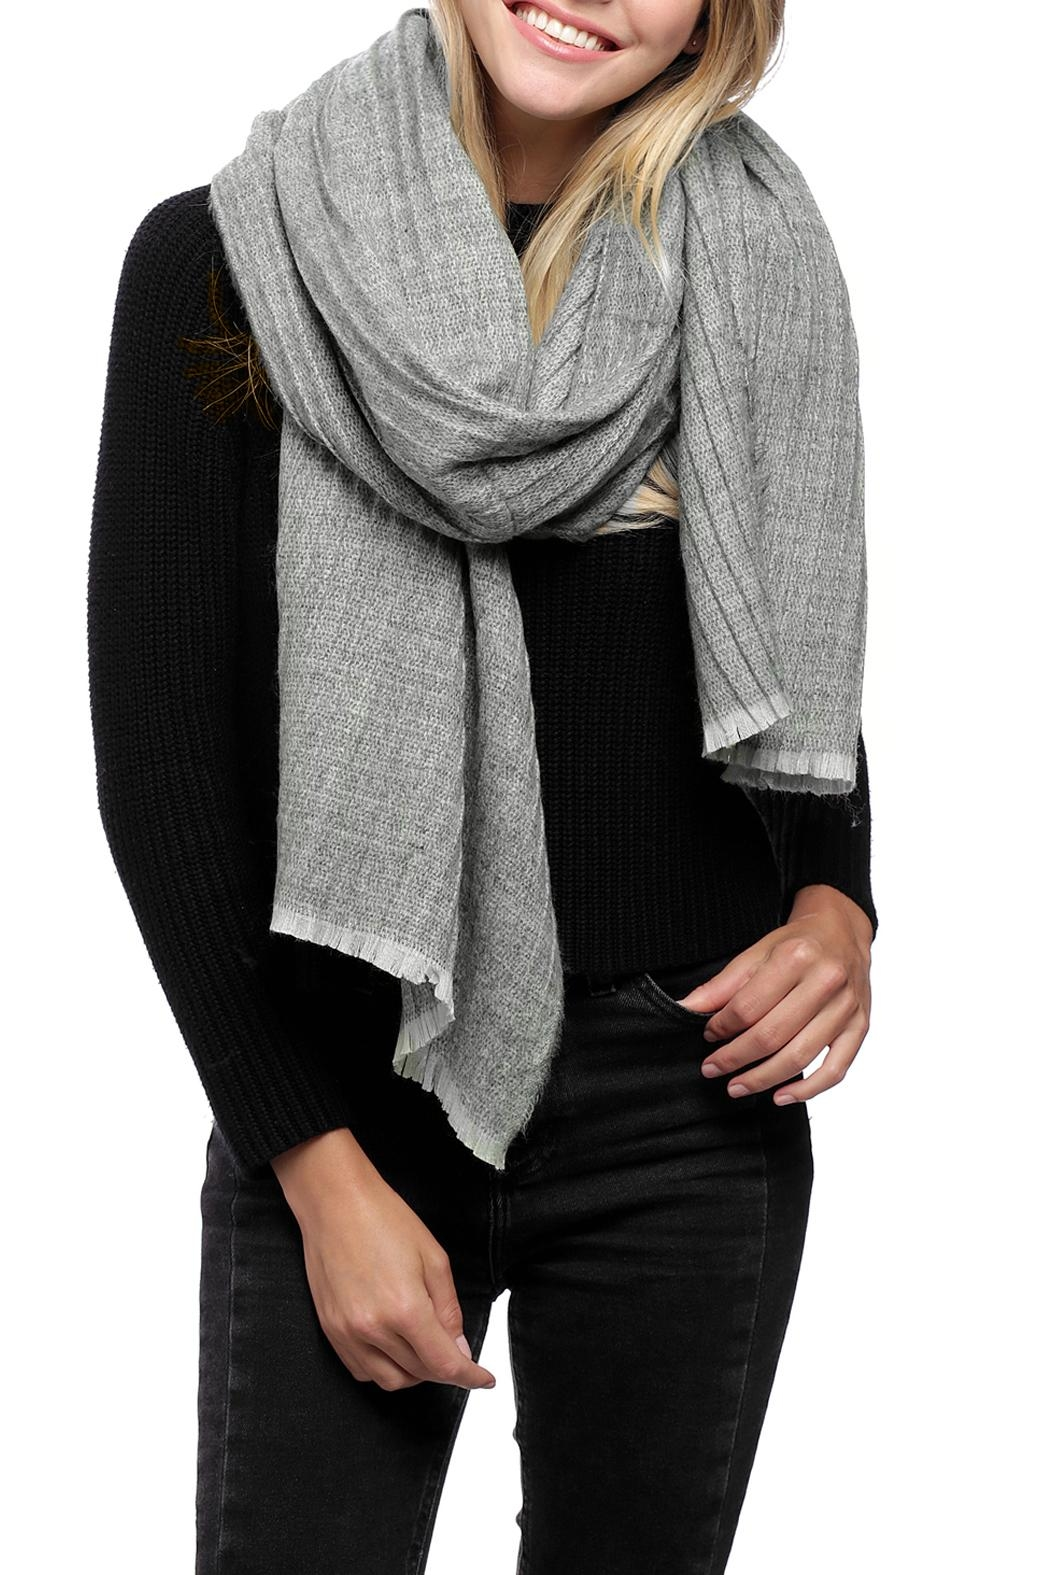 JChronicles Oblong Pleats Scarf - Main Image